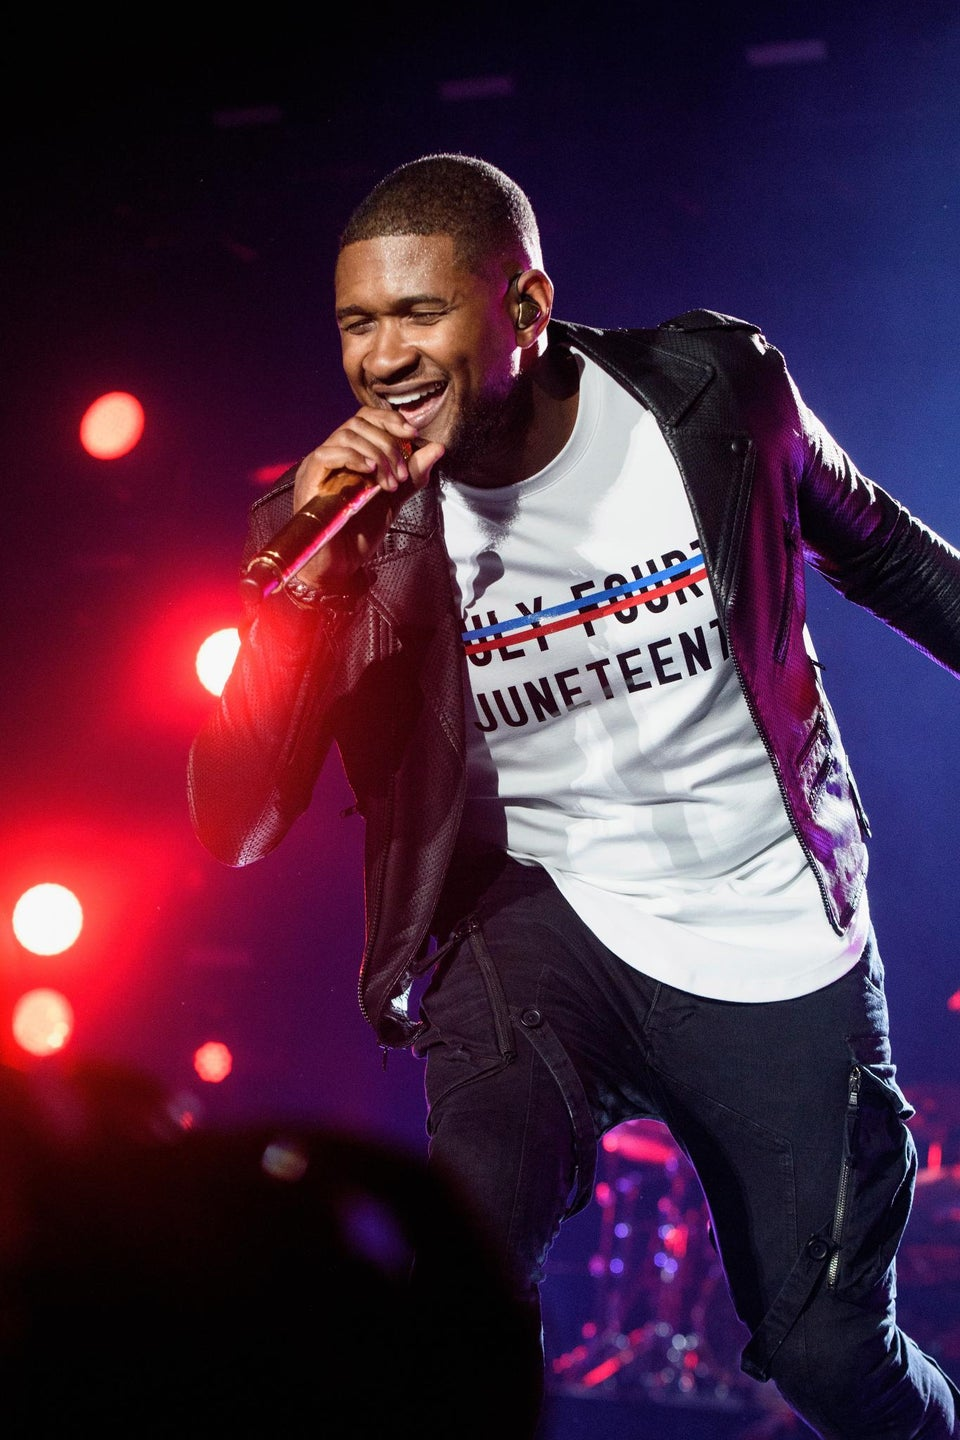 Why Usher's Juneteenth Shirt Means Everything